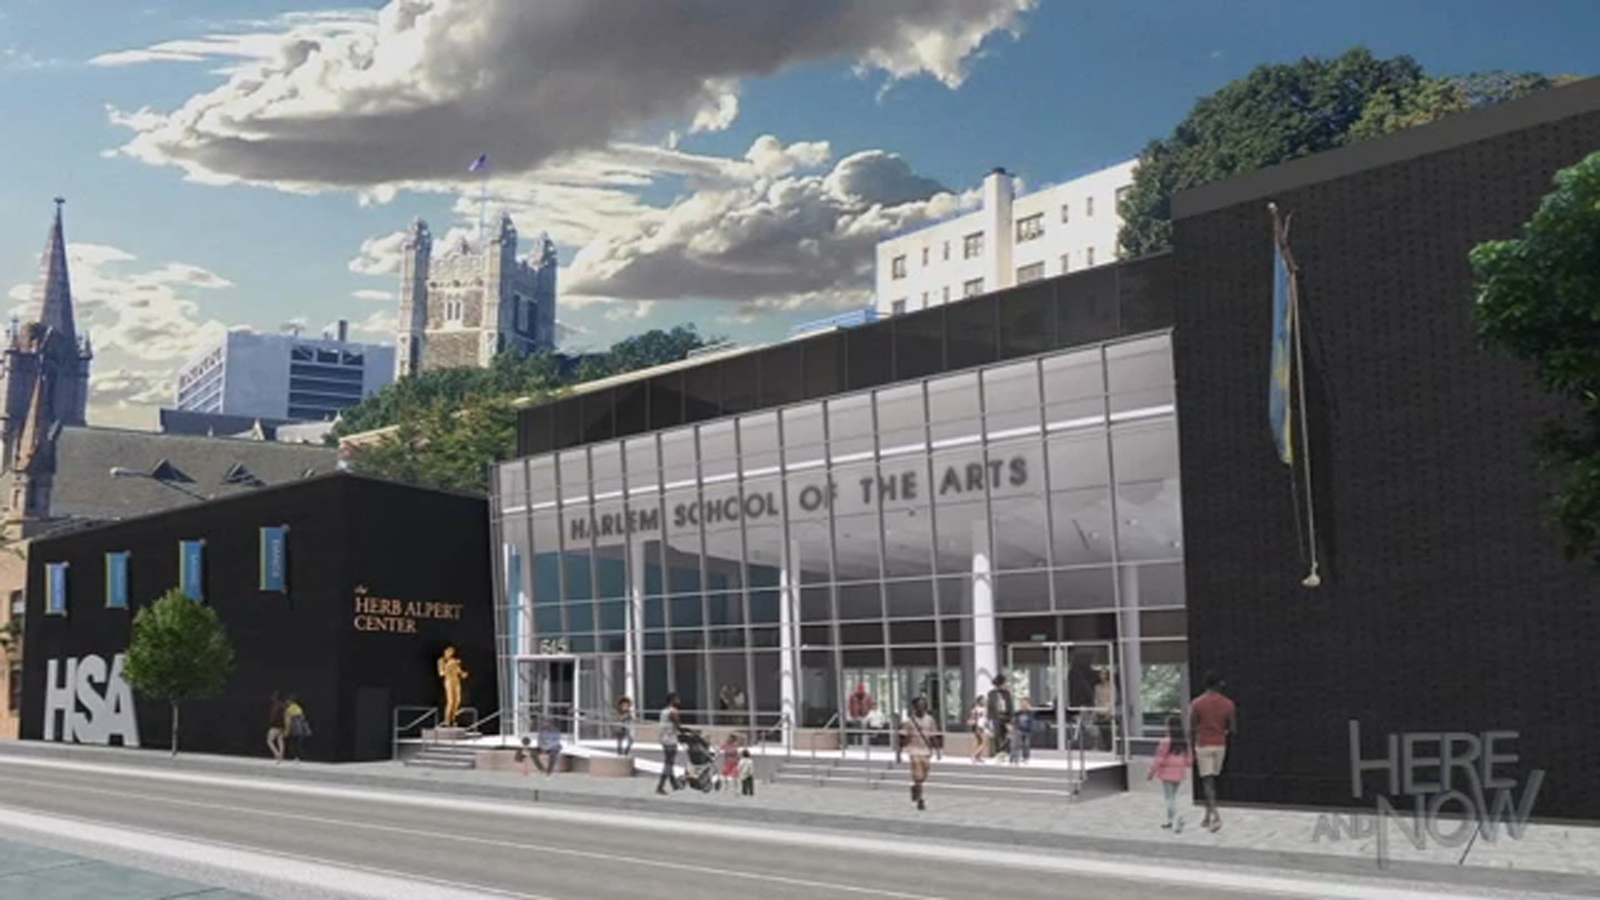 Harlem School of the Arts recieves multi-million dollar gift from The Herb Alpert Foundation